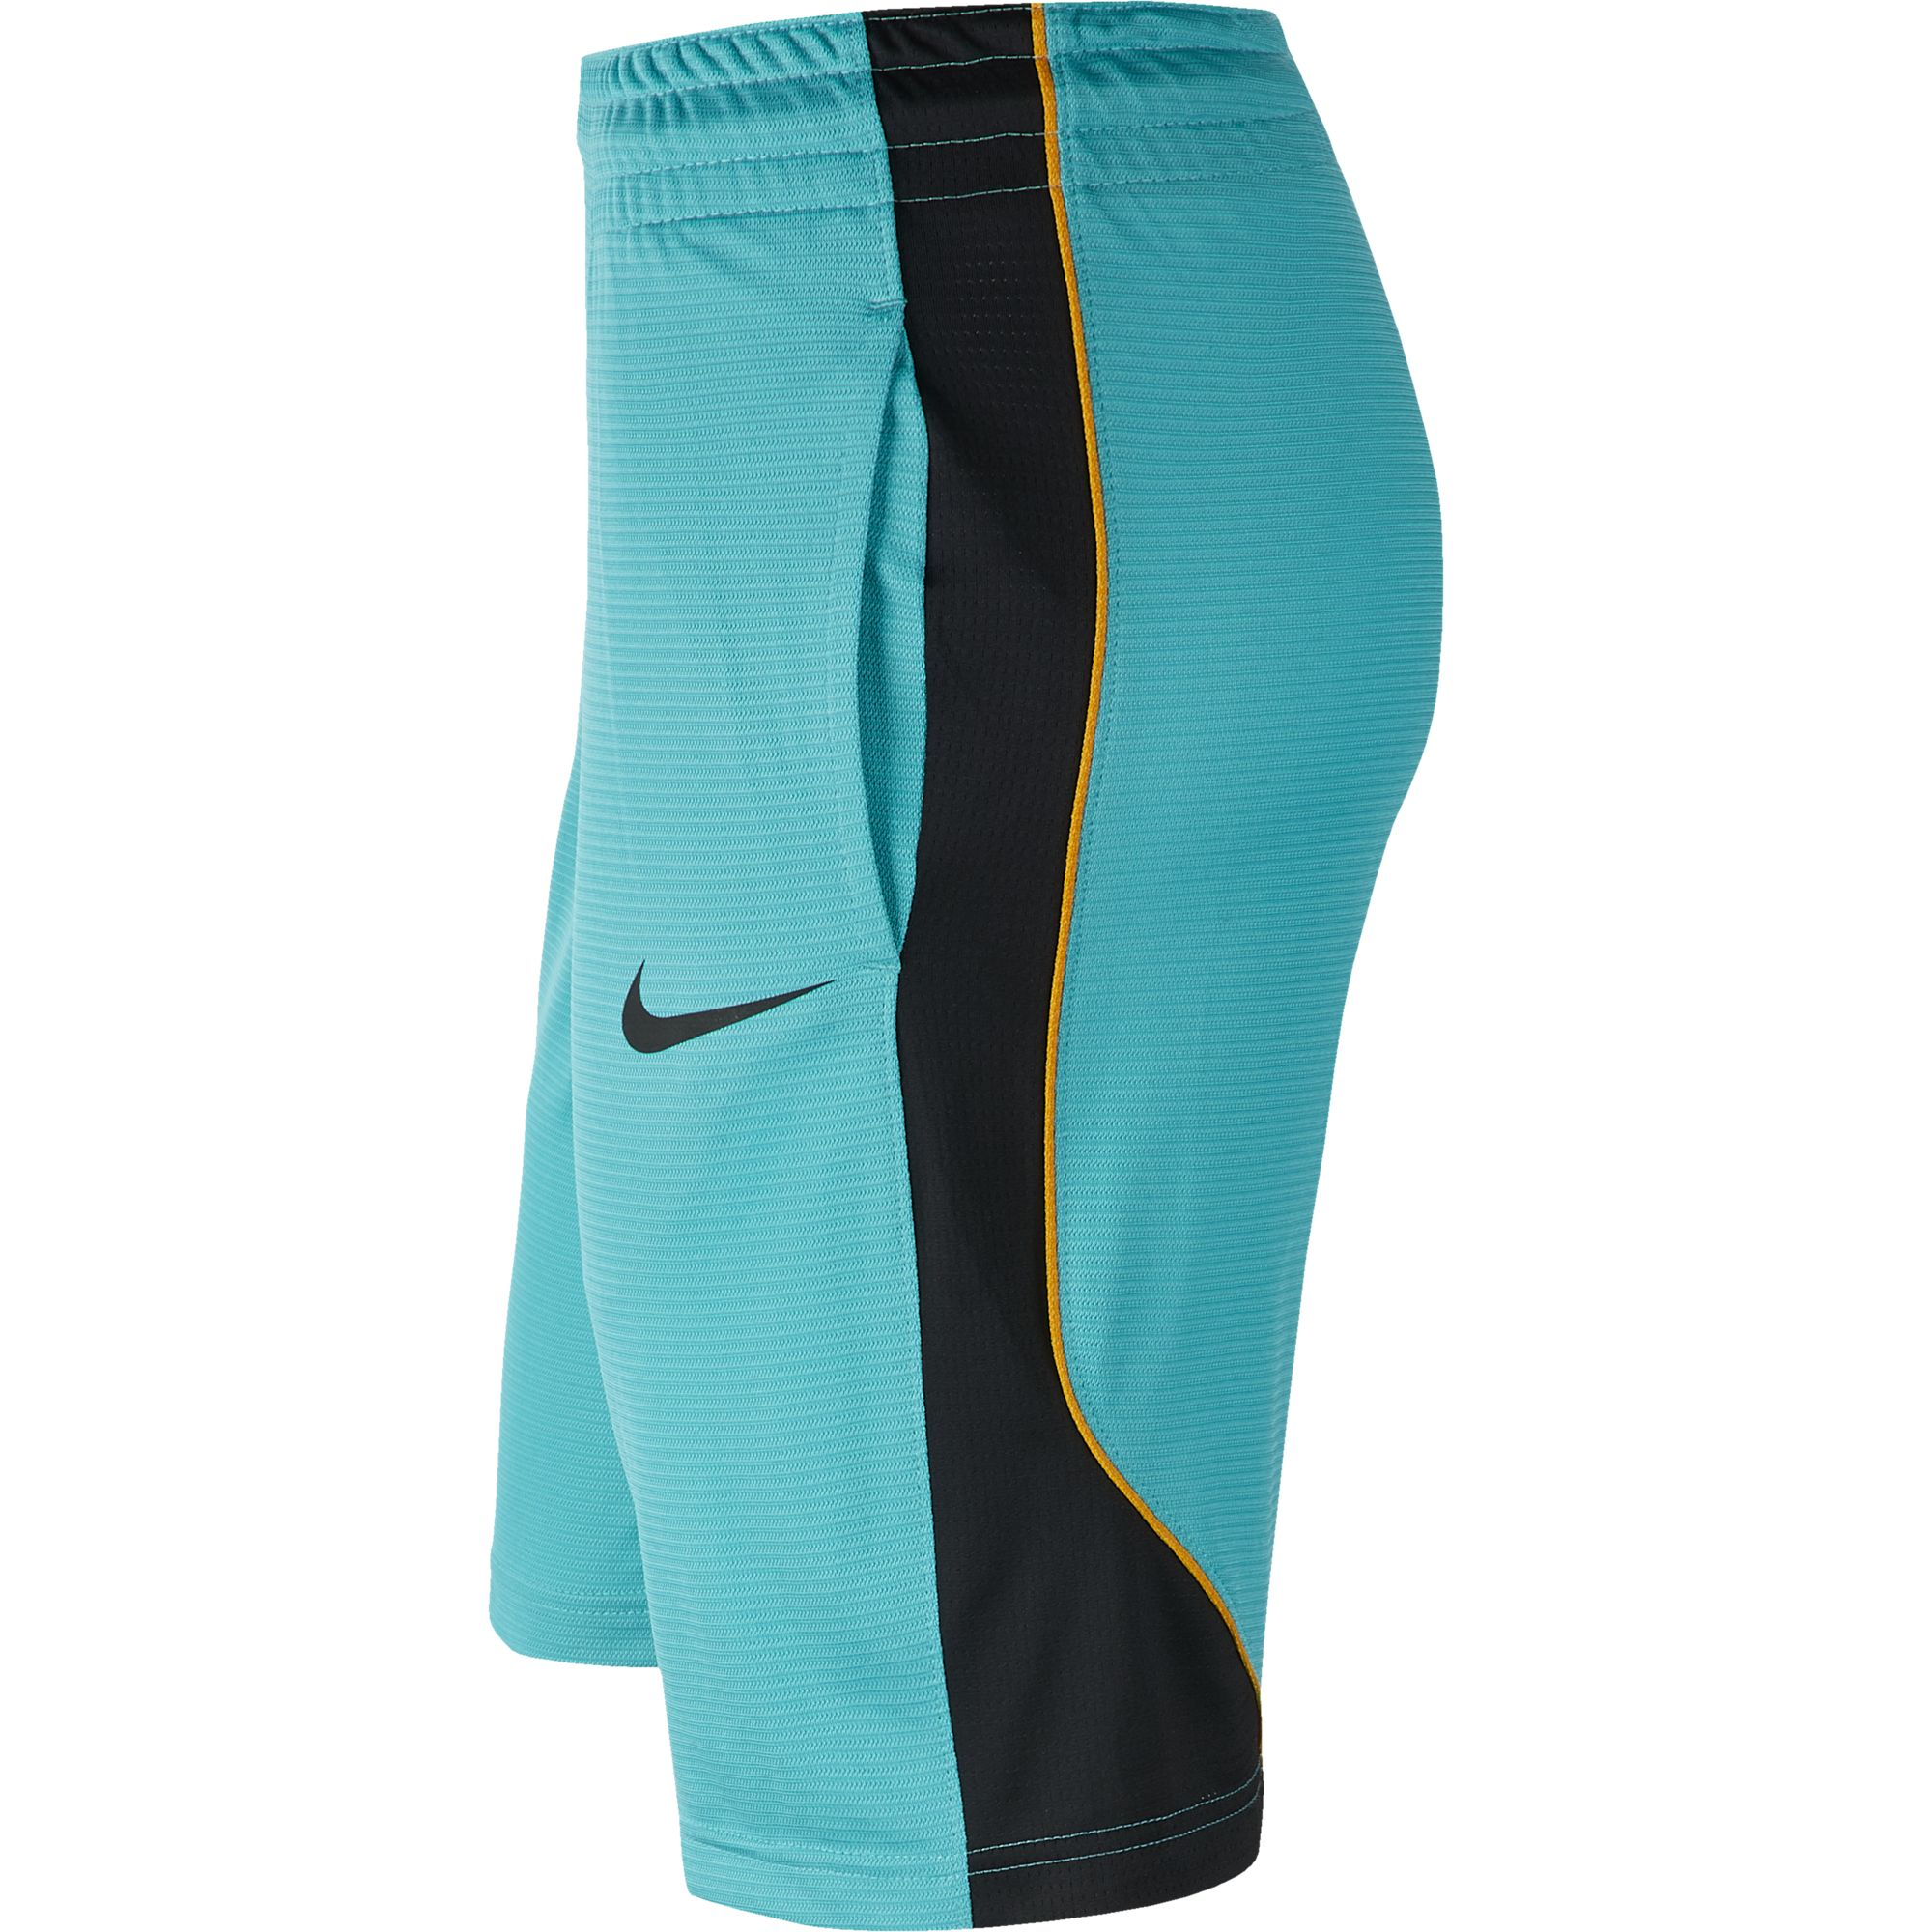 Nike Womens Basketball Dry Shorts - Cabana/Black/Canyon Gold